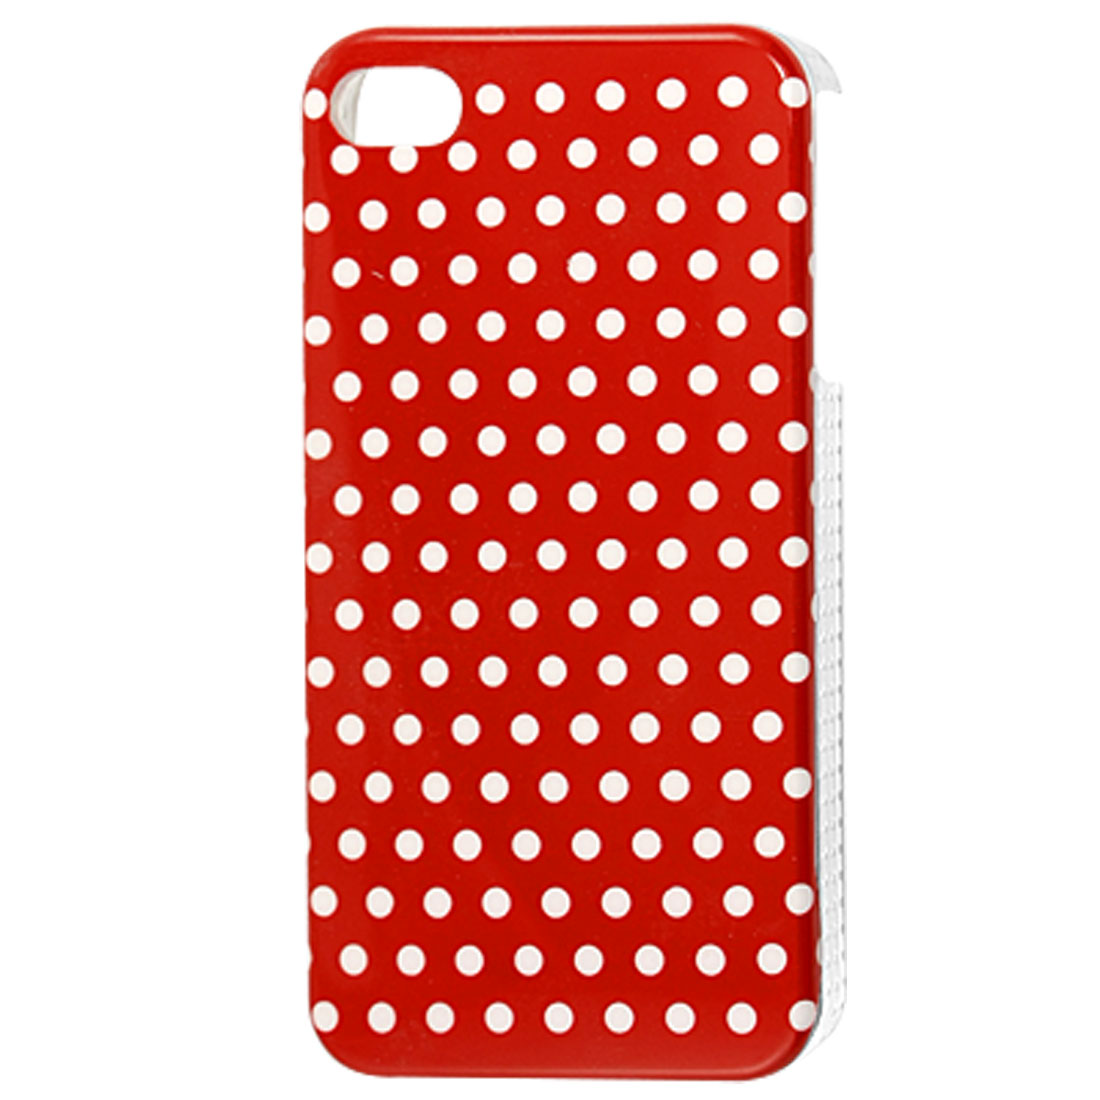 White Dots Red Hard Plastic IMD Back Case Cover for iPhone 4 4G 4S